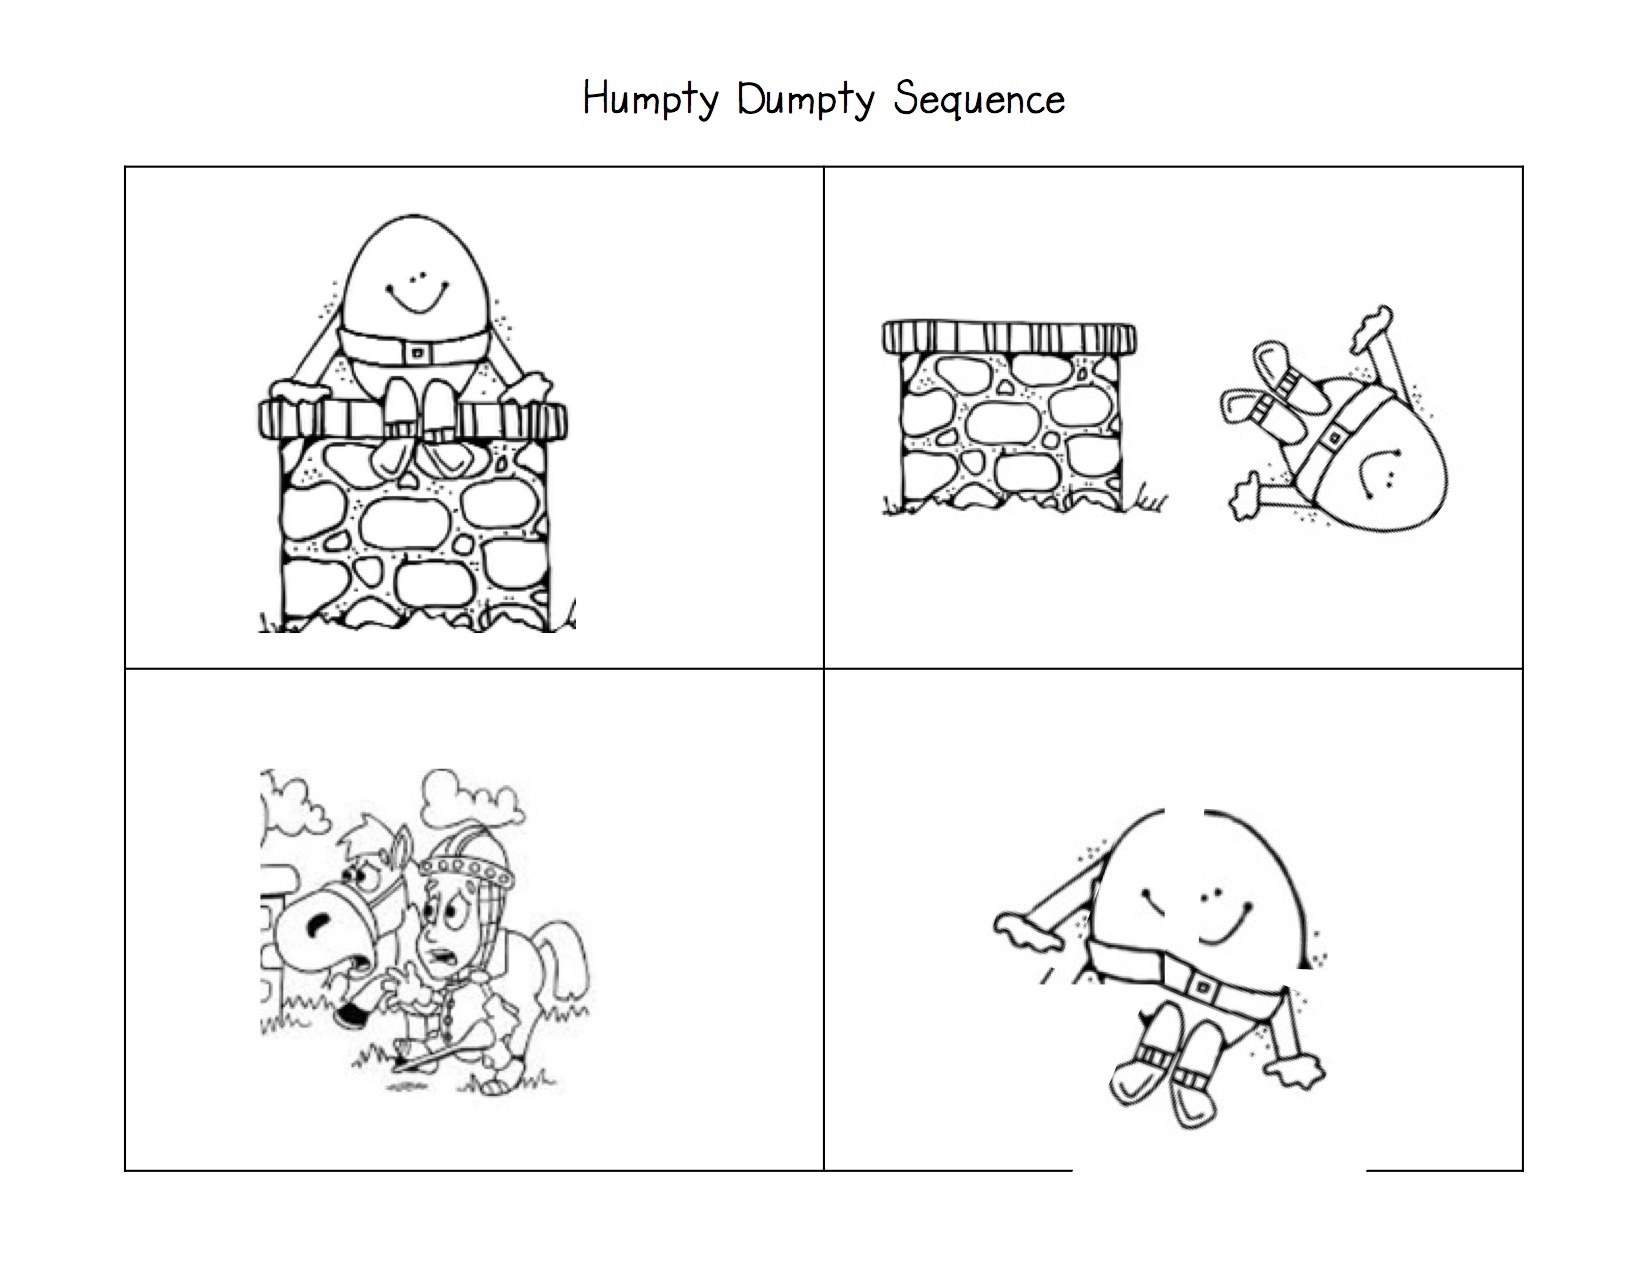 6 Images of Humpty Dumpty Sequencing Cards For Printable